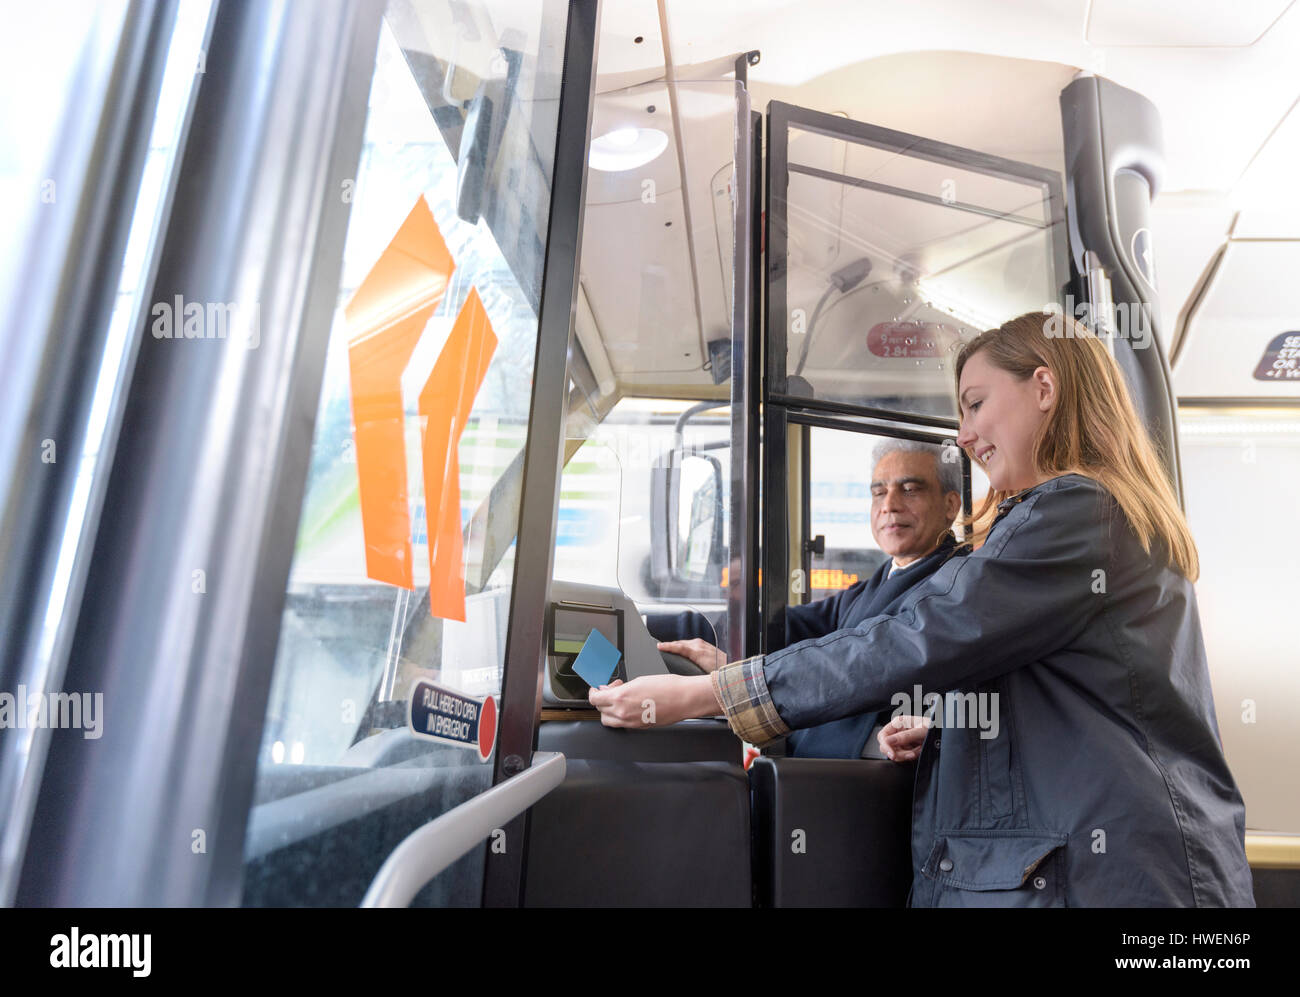 Bus driver with passenger swiping travel card on electric bus - Stock Image